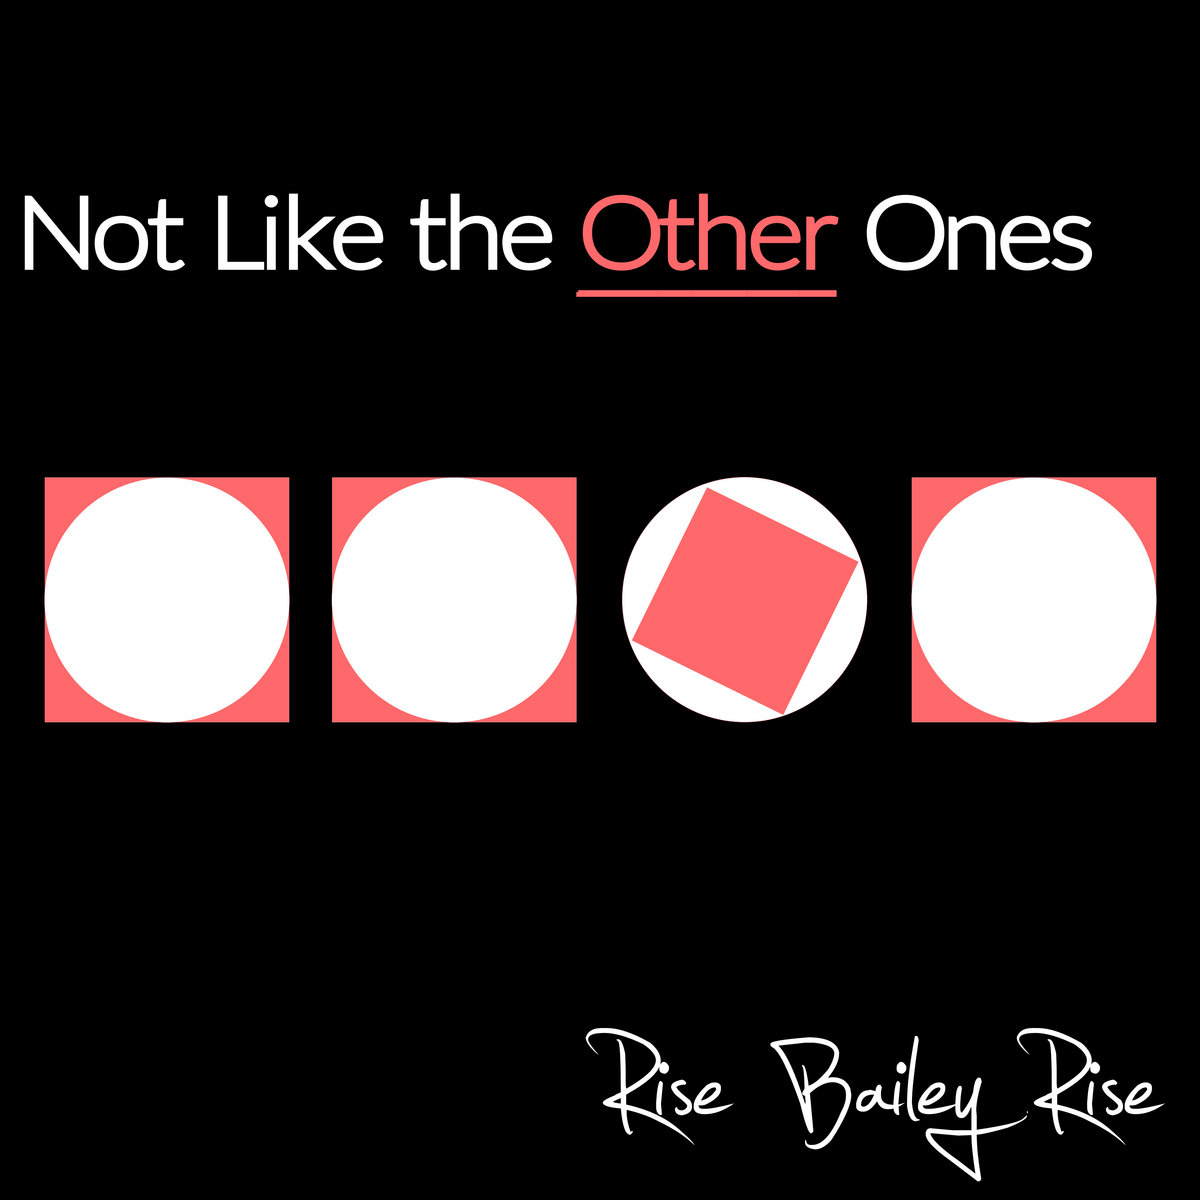 Not Like The Other Ones by Rise Bailey Rise